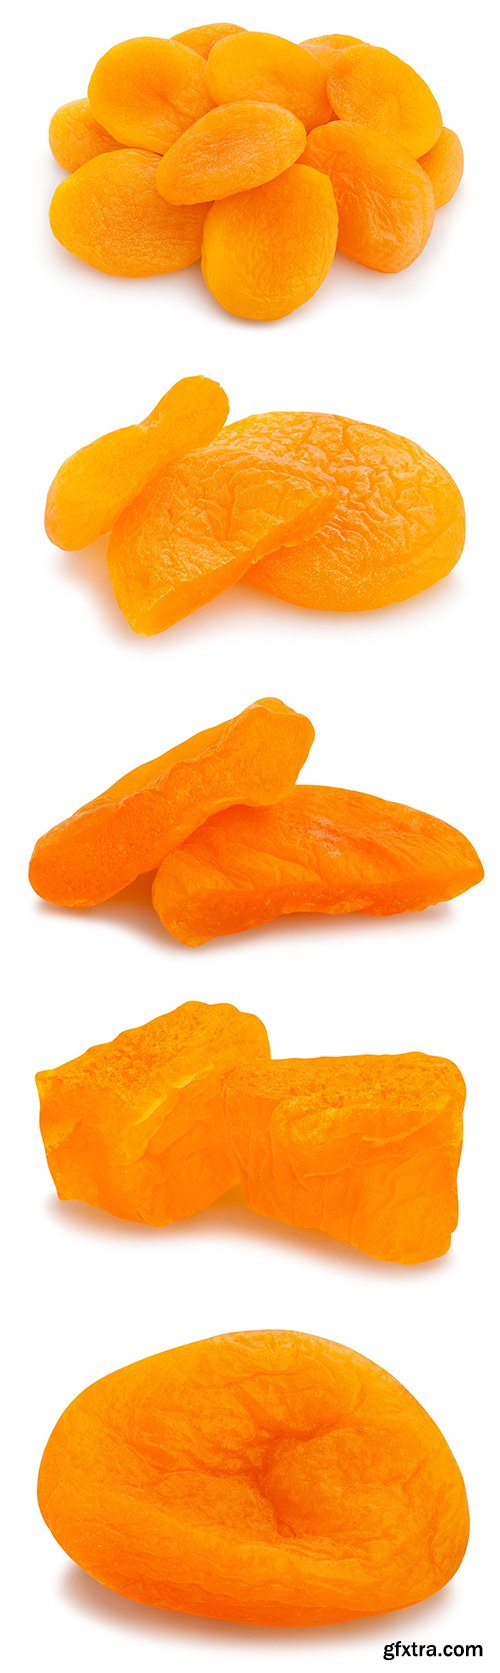 Dried Apricots Isolated - 7xJPGs